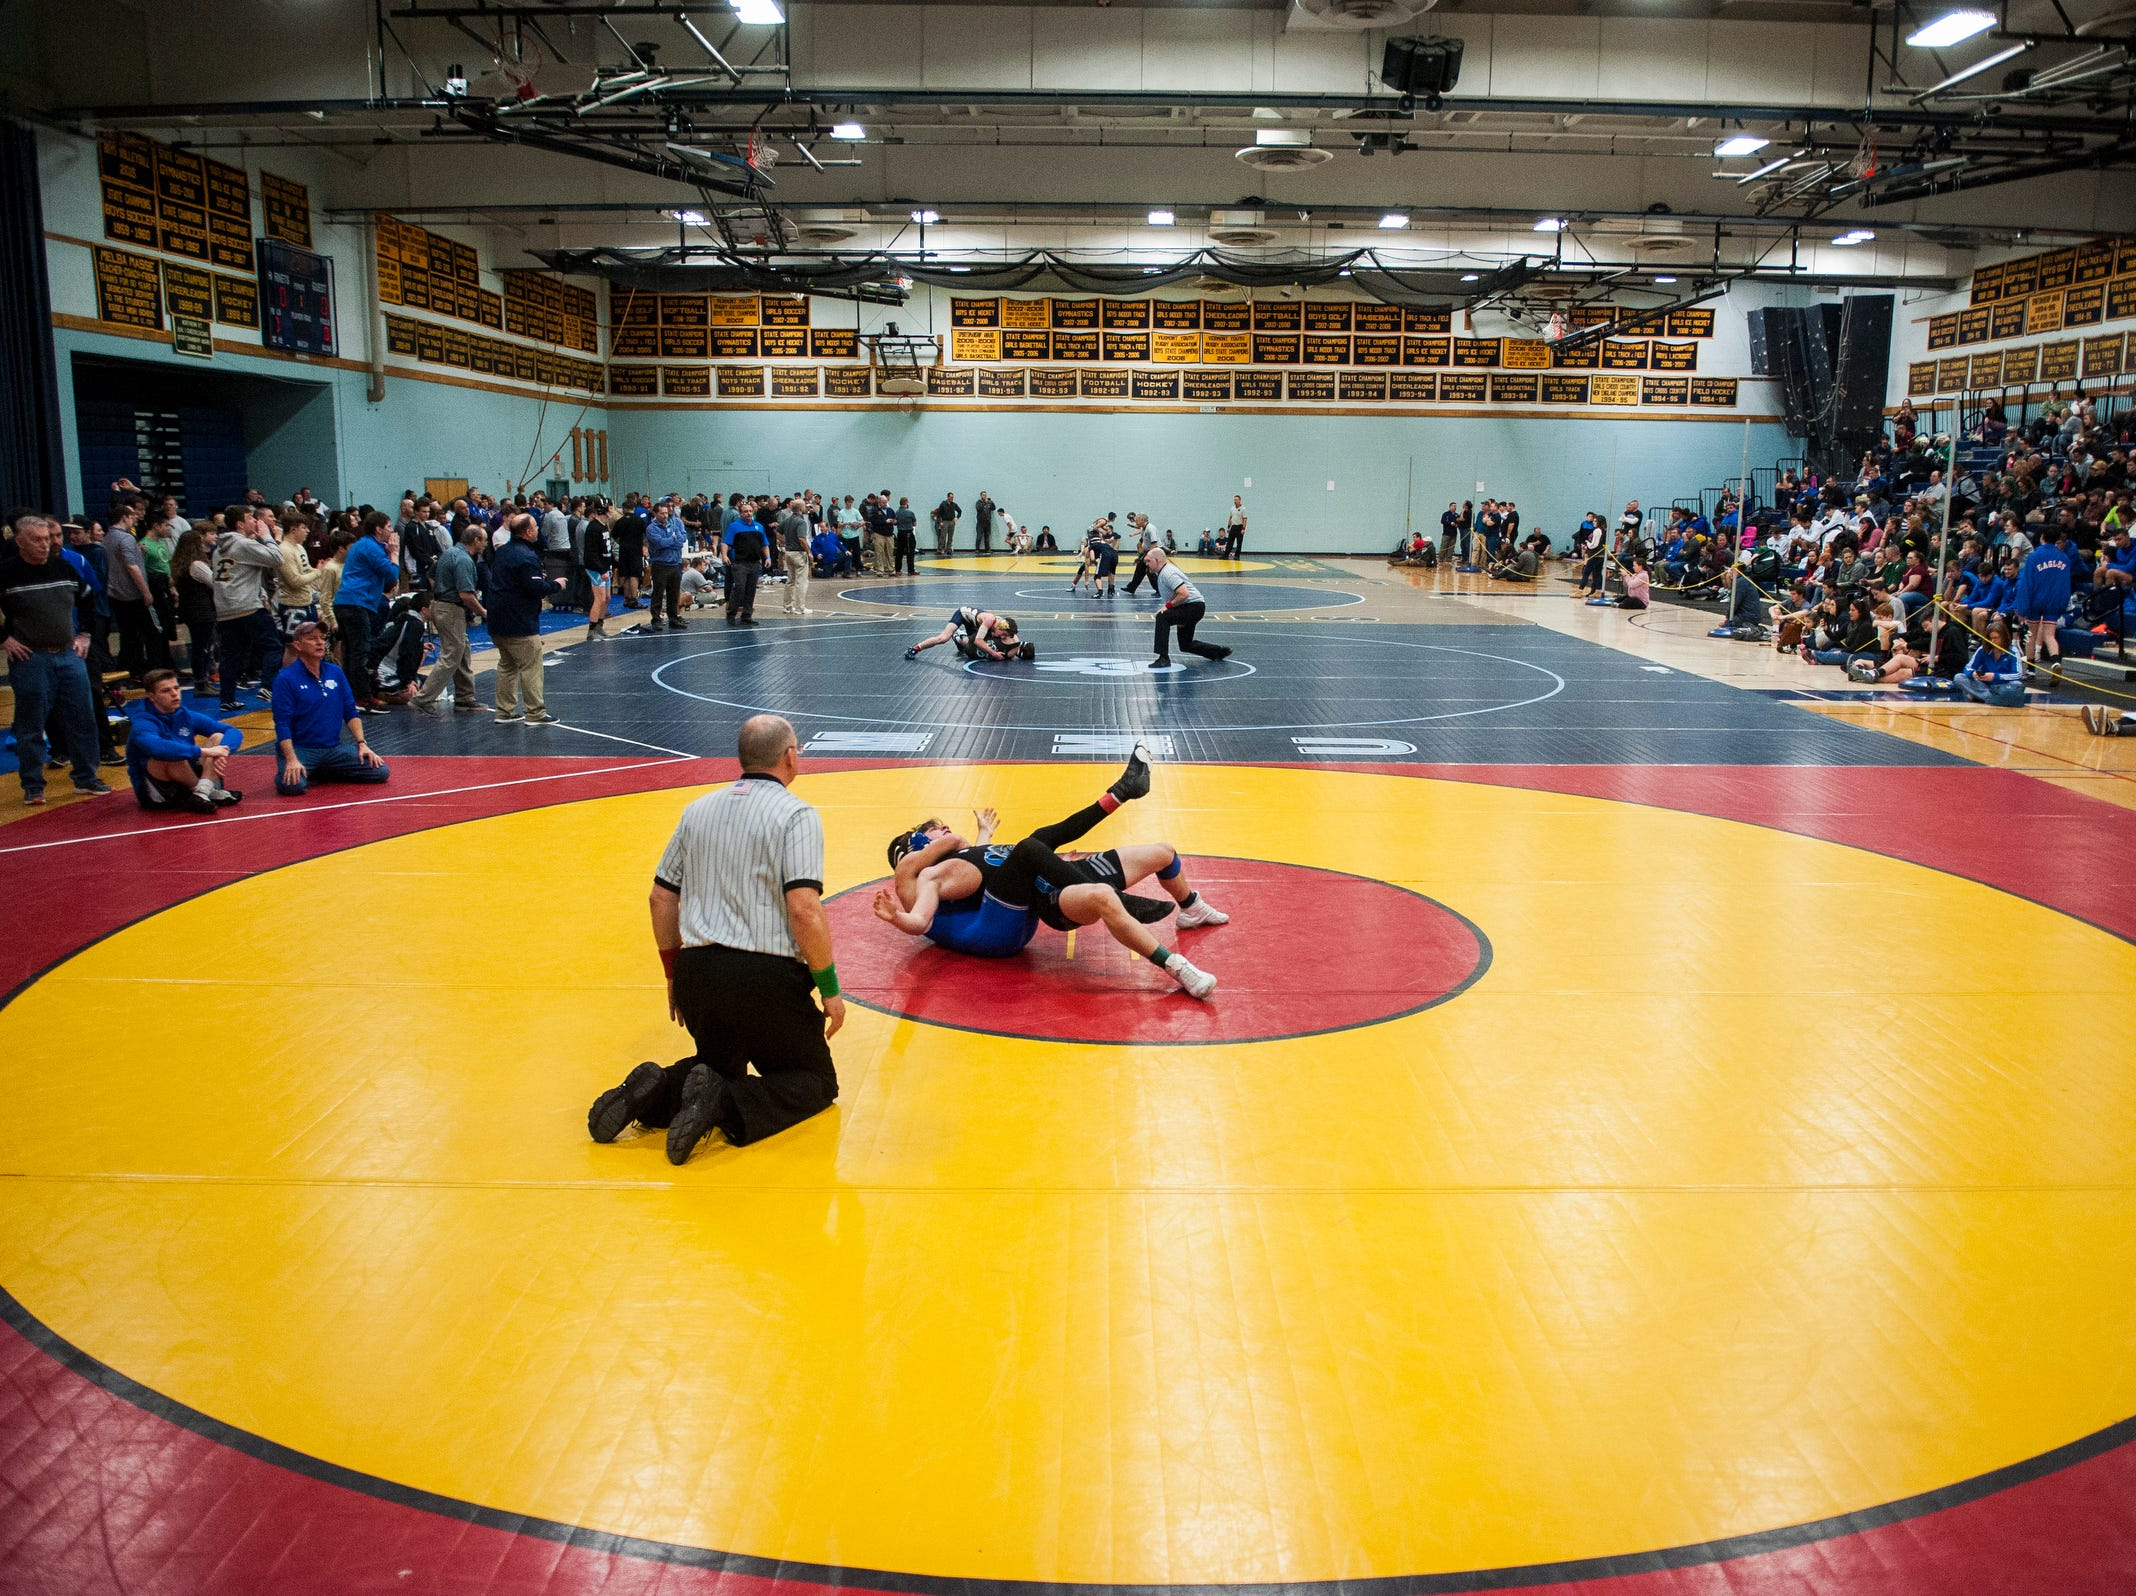 Wrestlers compete during the Michael J. Baker Essex Classic wrestling tournament at Essex High School on Friday afternoon January 18, 2019 in Essex, Vermont.